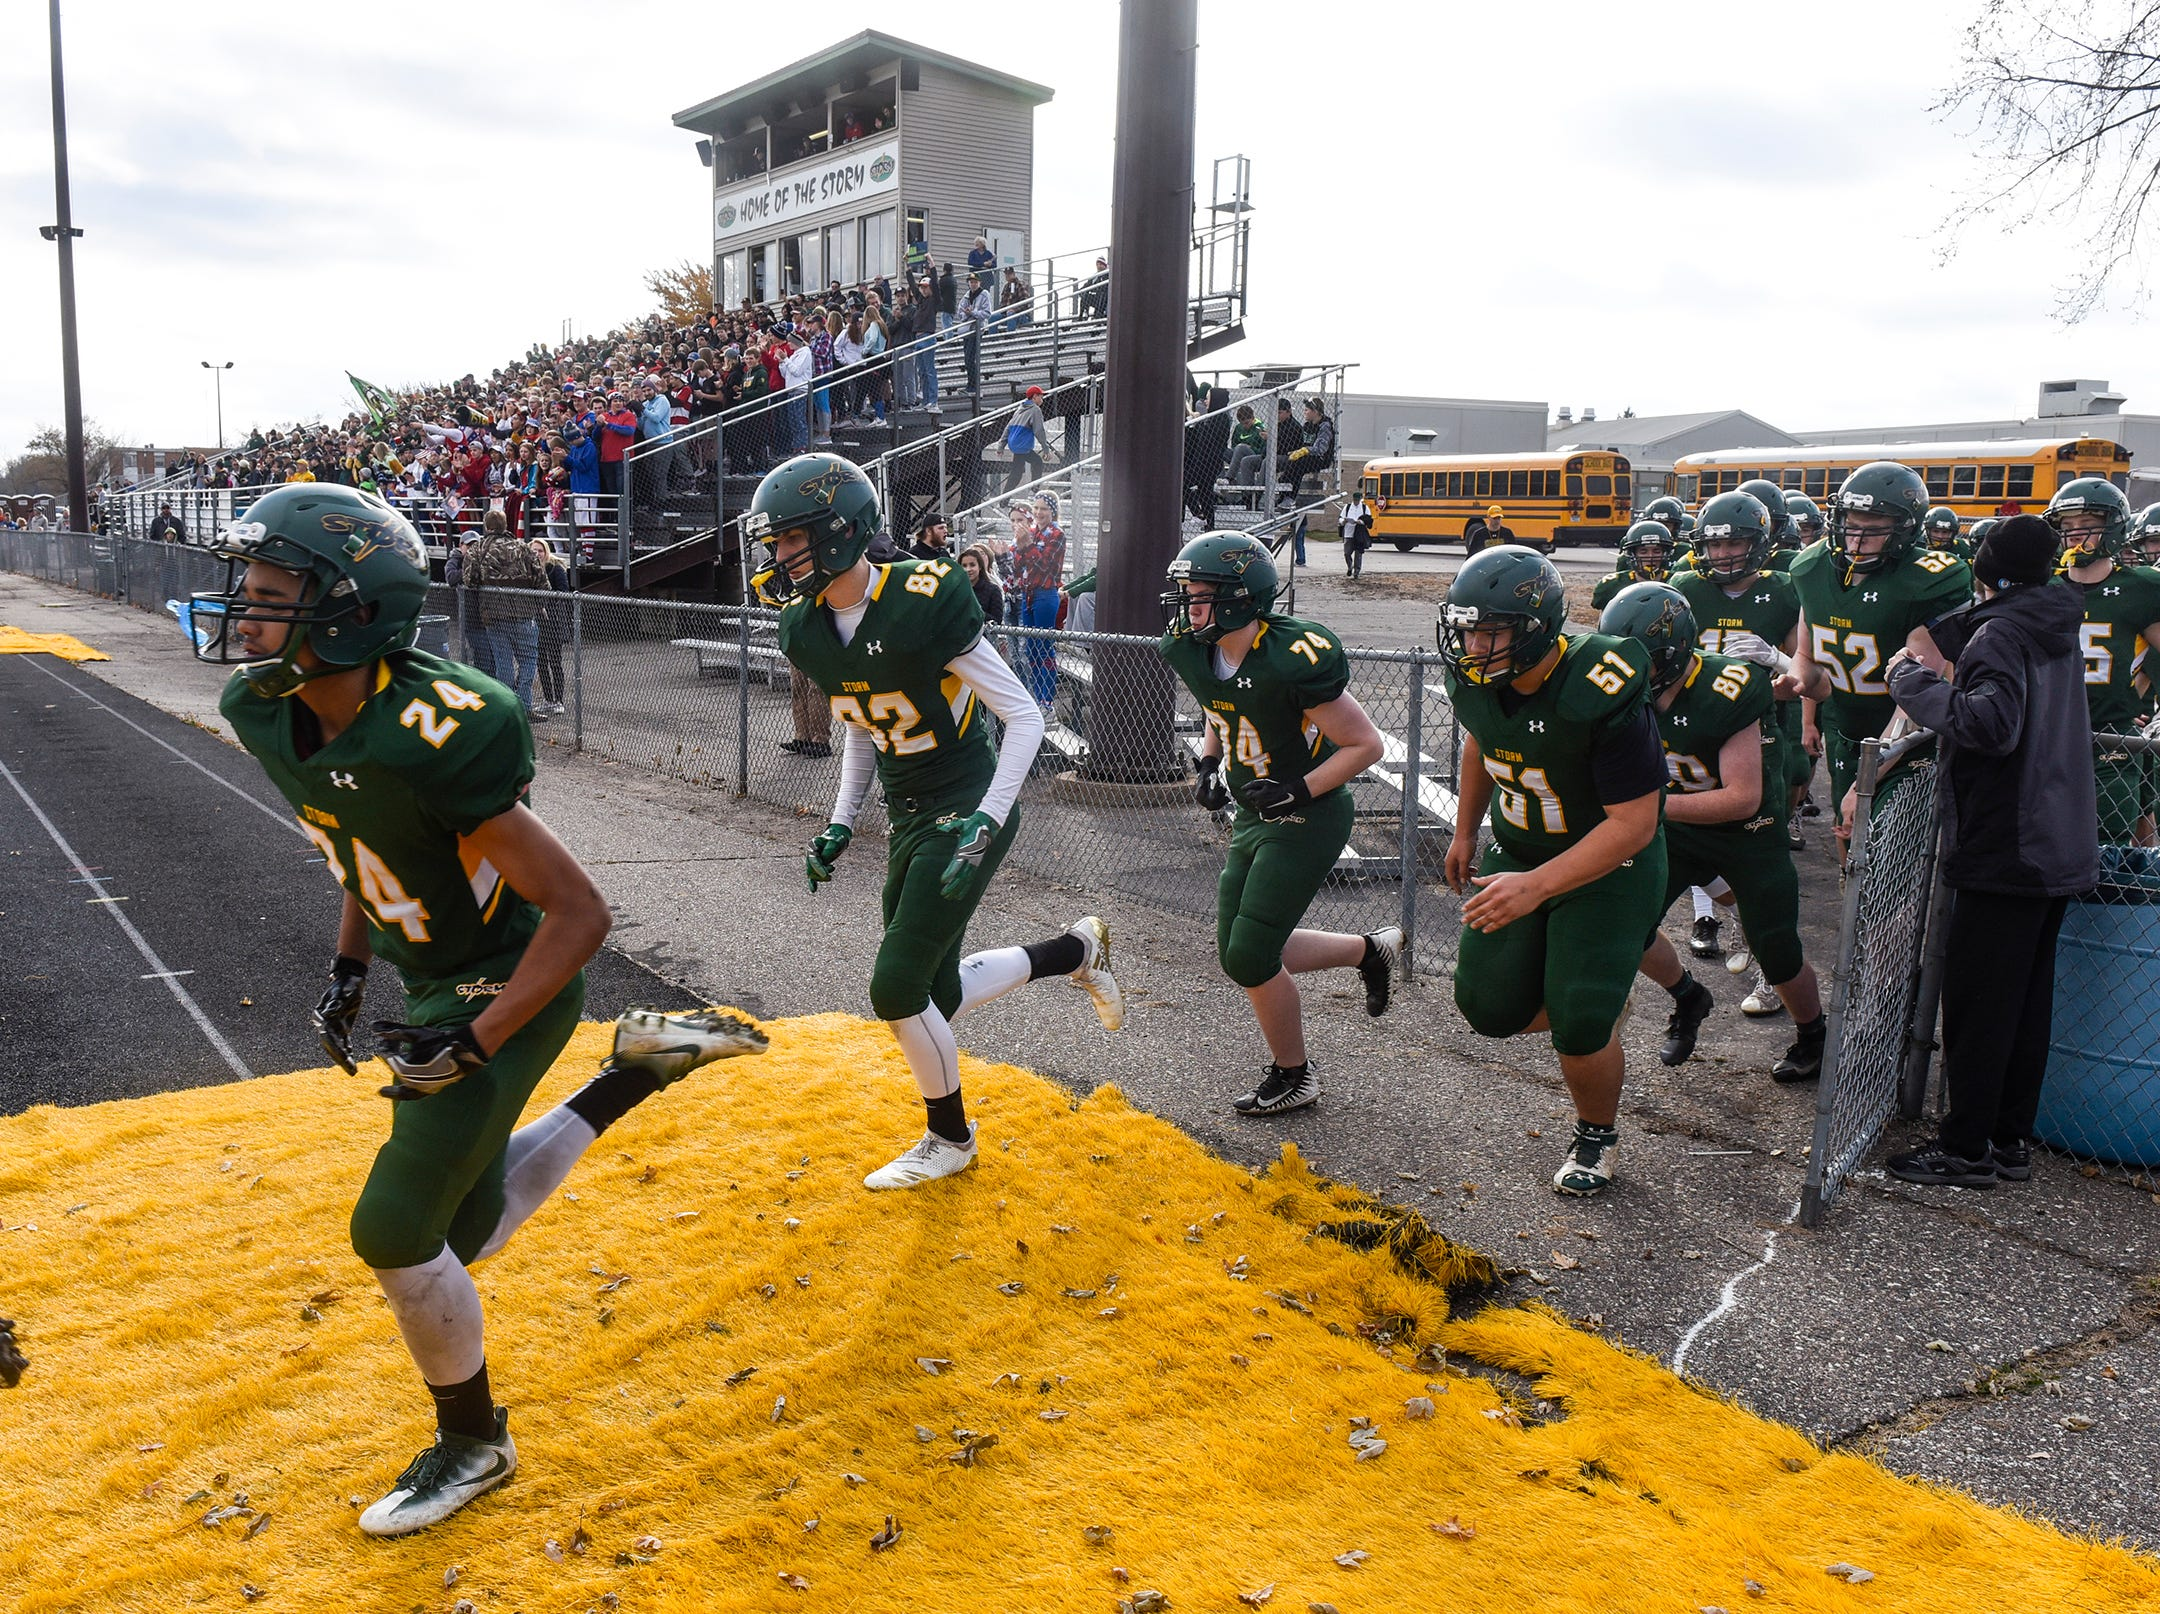 Storm players take the field Saturday, Oct. 27, during the Section 6-5A semifinal game in Sauk Rapids.